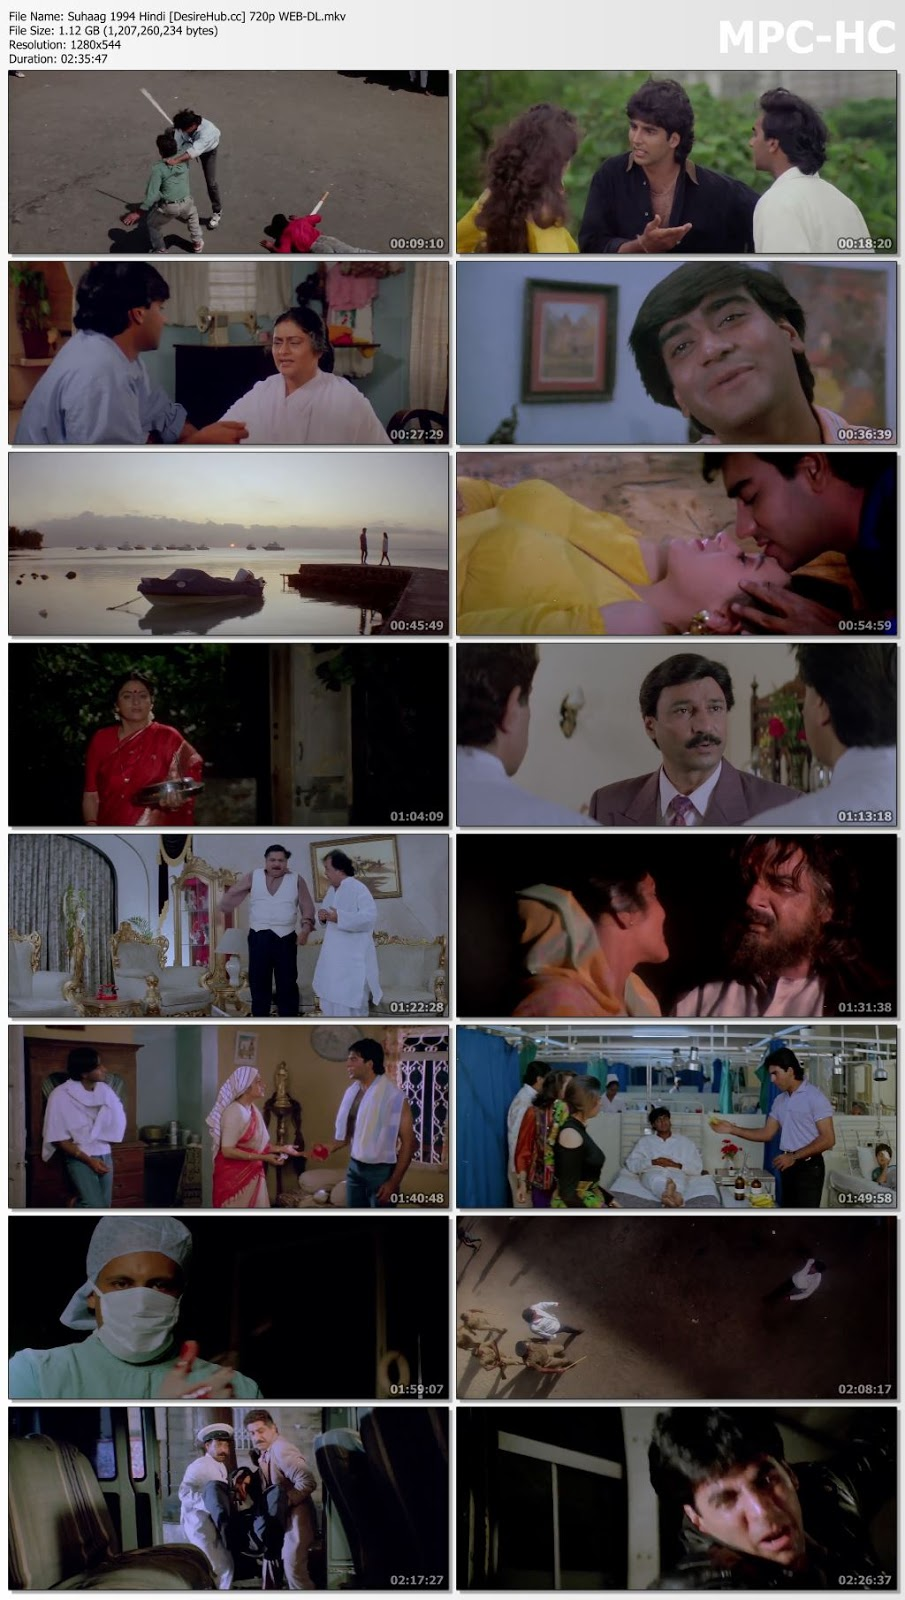 Suhaag 1994 Hindi 720p WEB-DL 1.1GB Desirehub